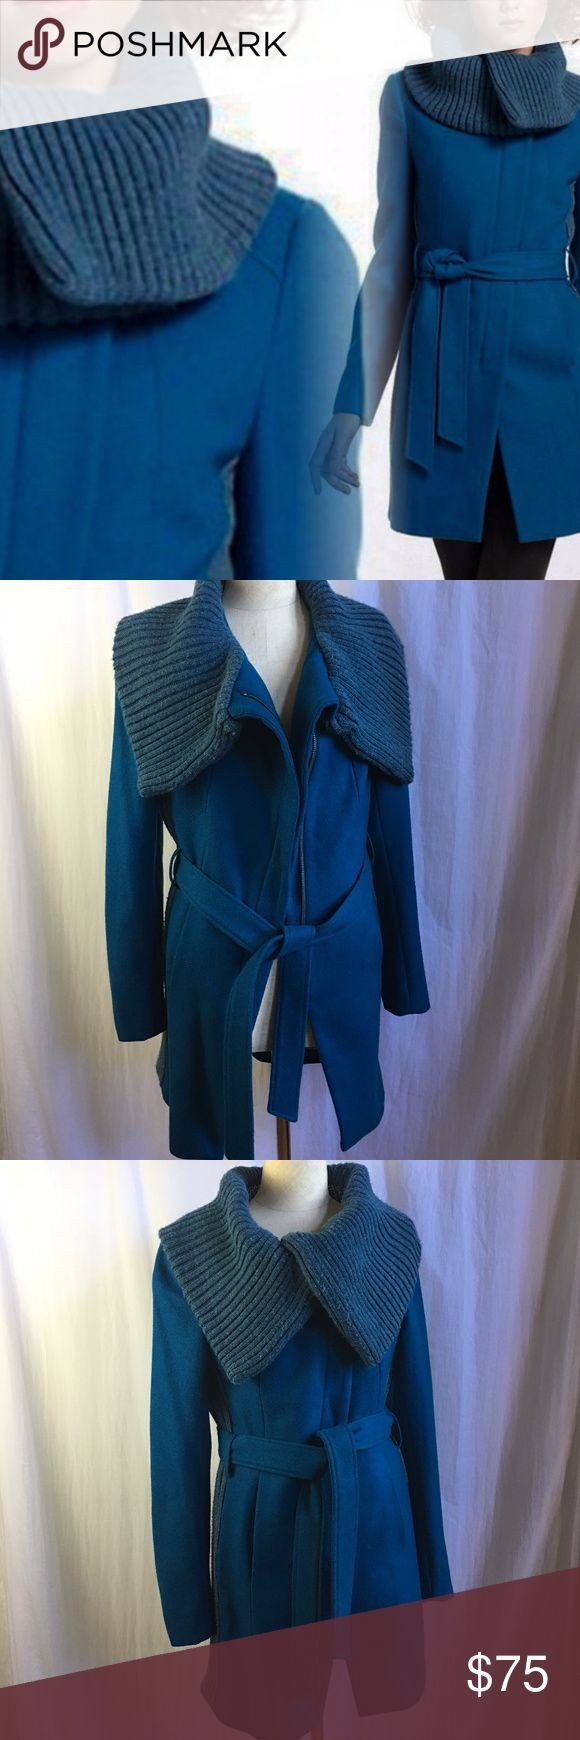 Anthro Elevenses Judith Collar Blue Wool Coat Anthropologie  Elevenses Judith Collar Blue Wool Coat sz 6.  Make a statement this Winter.  Ribbed Sweater knit fall over collar.  Wool Blend and Asymetrical Zip Front. Sweater panels add contrast underneath each arm to hem.  Belted for added warmth.  Approx Measurements in inches: Bust:36 Waist:34Sleeve:26 Length:34.  Sku#1024107139-20 Anthropologie Jackets & Coats